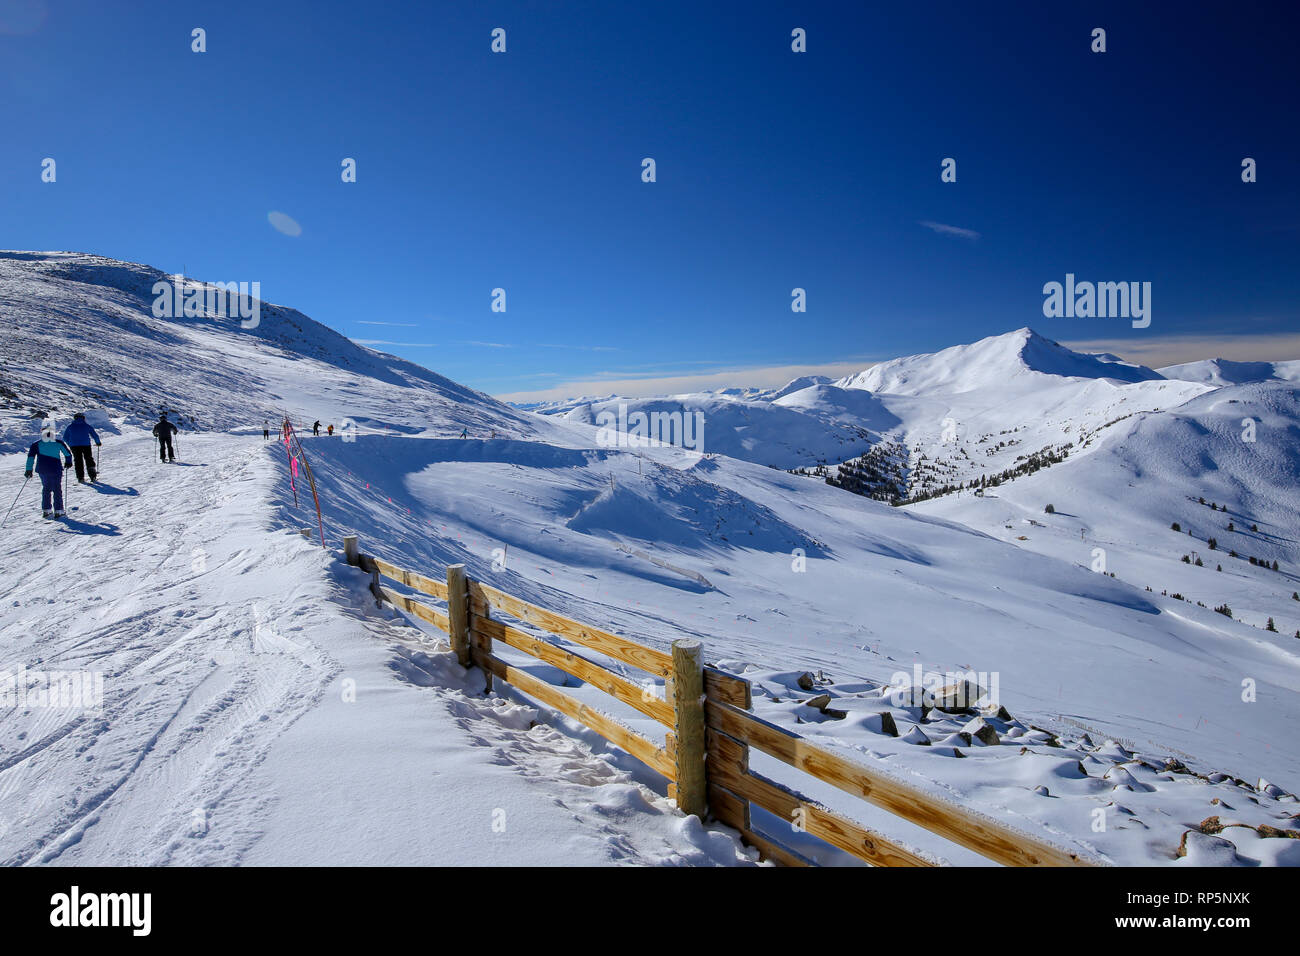 Skiers walking along the top of the mountain of the Colorado Rocky Mountains at Copper Mountain Ski Resort in winter - Stock Image